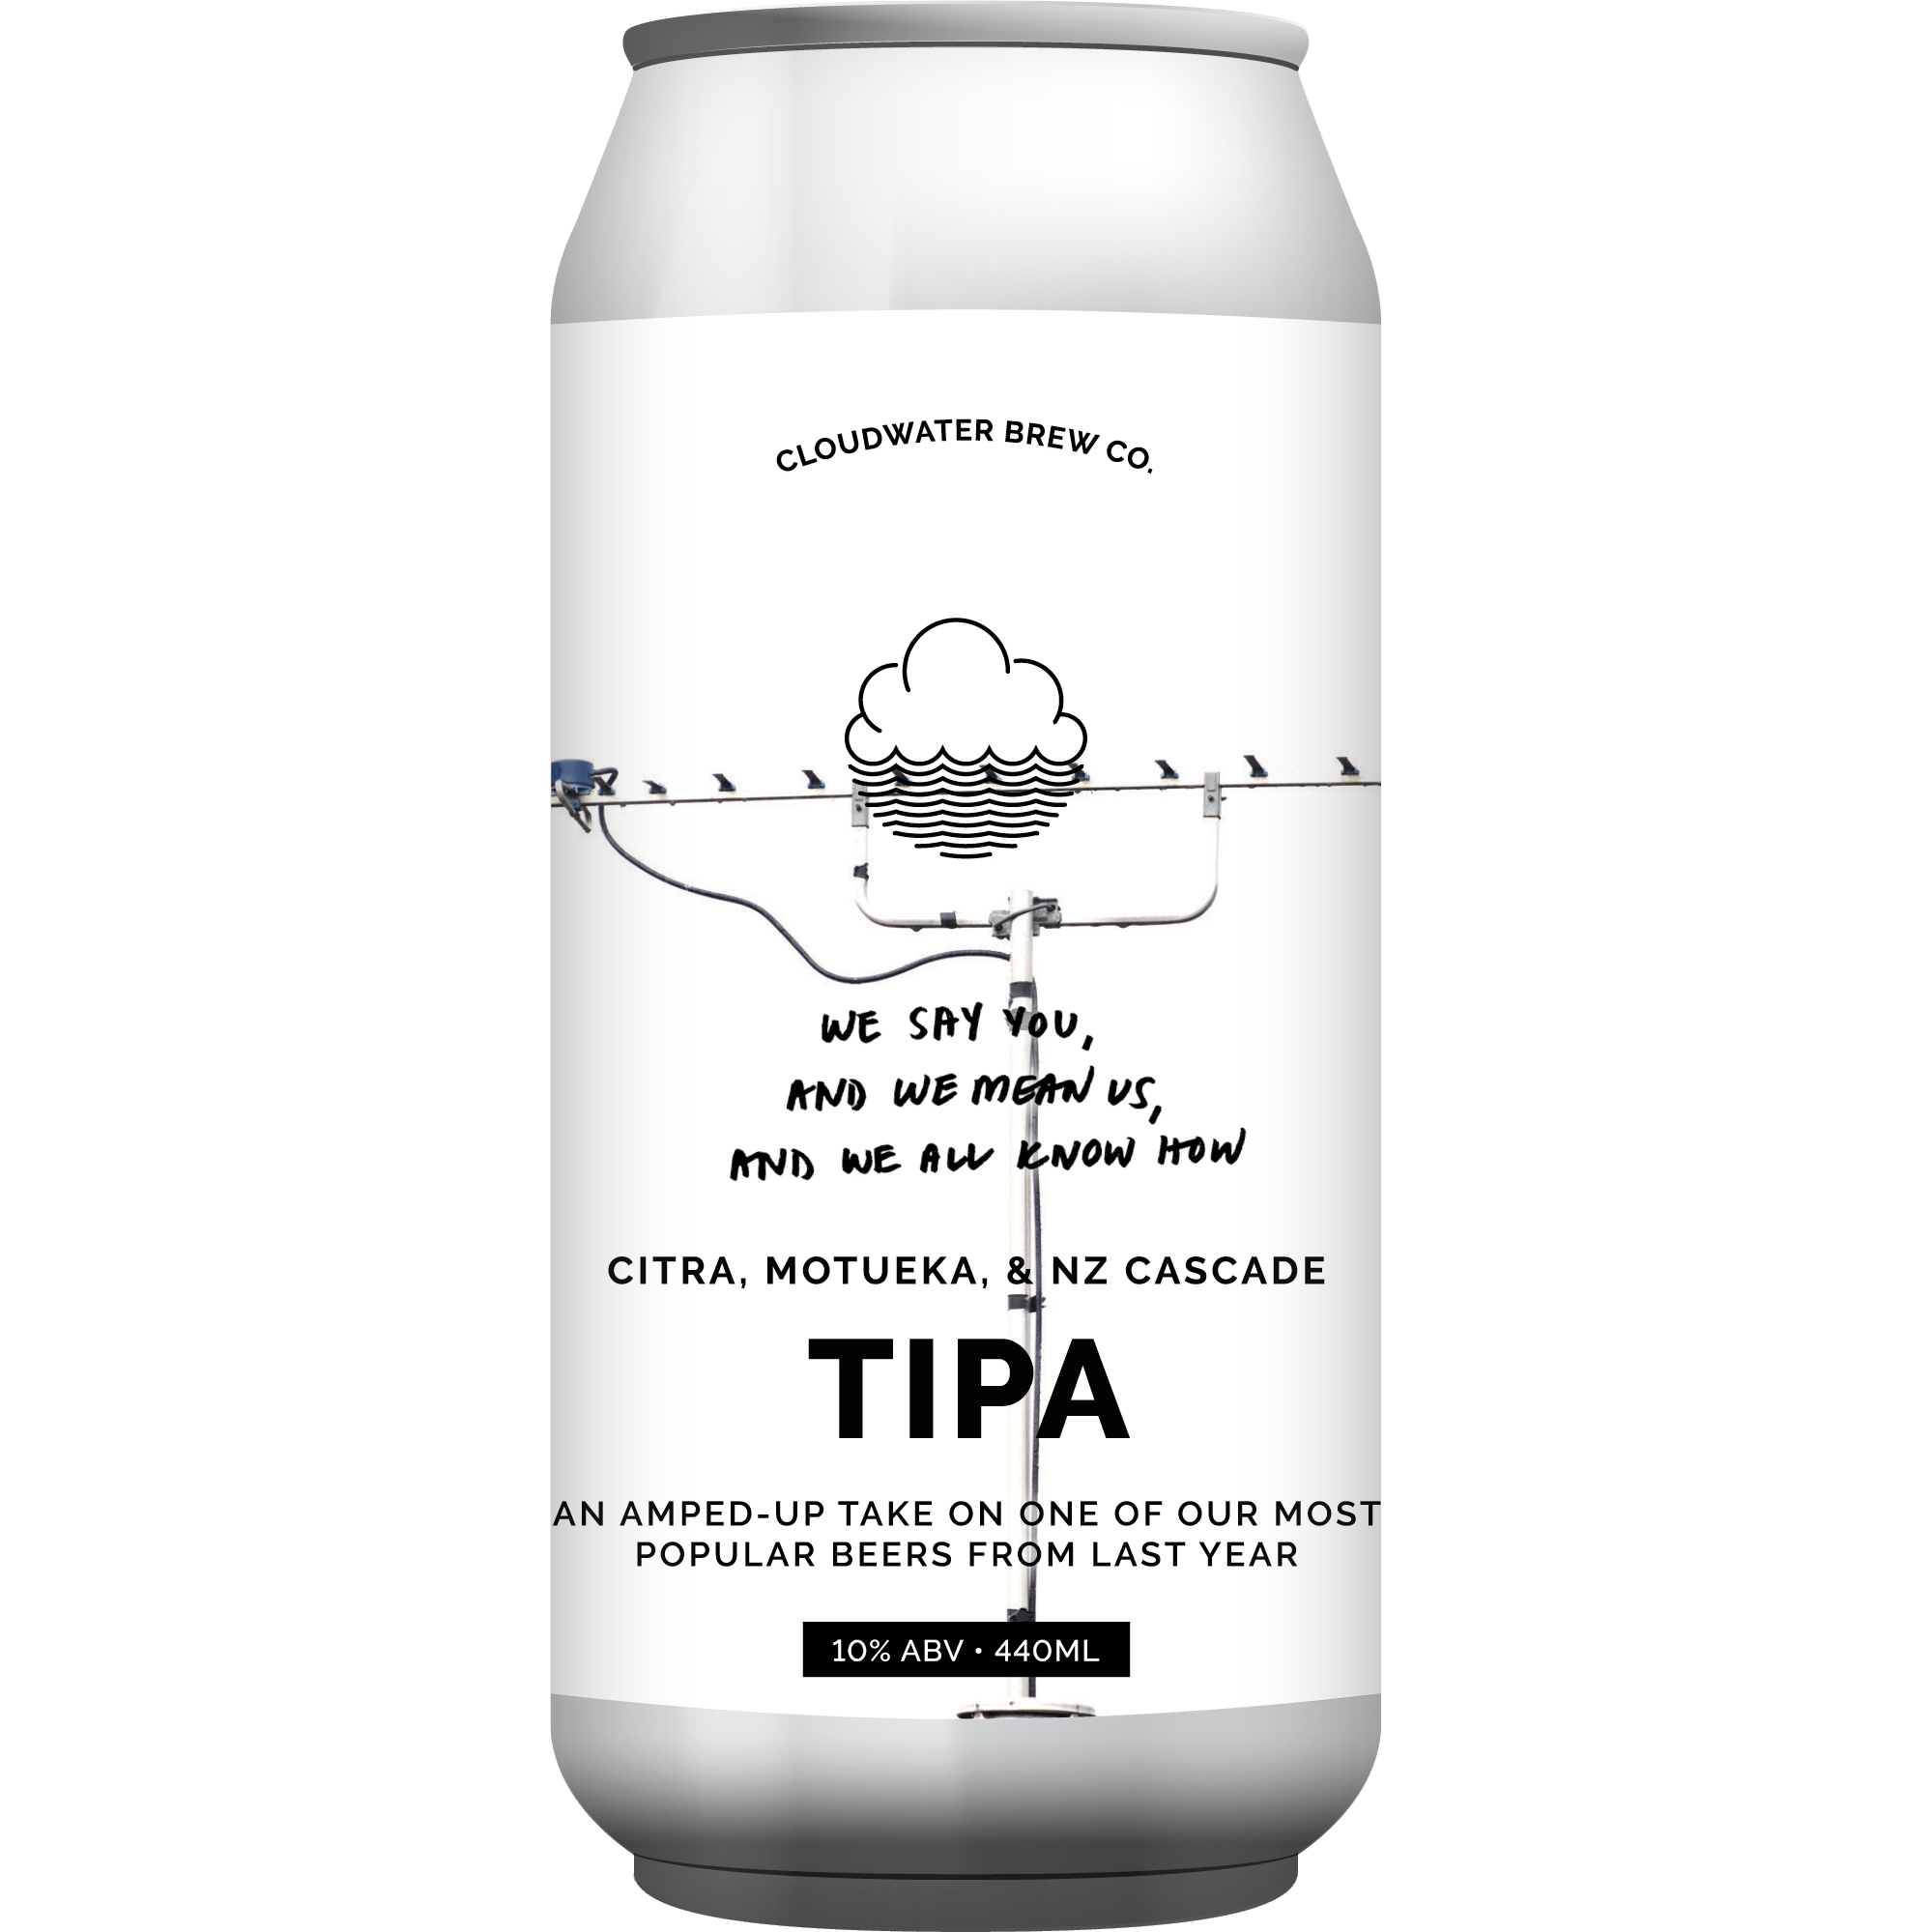 Cloudwater | We Say You, And We Mean Us, And We All Know How | TIPA 10% 440ml